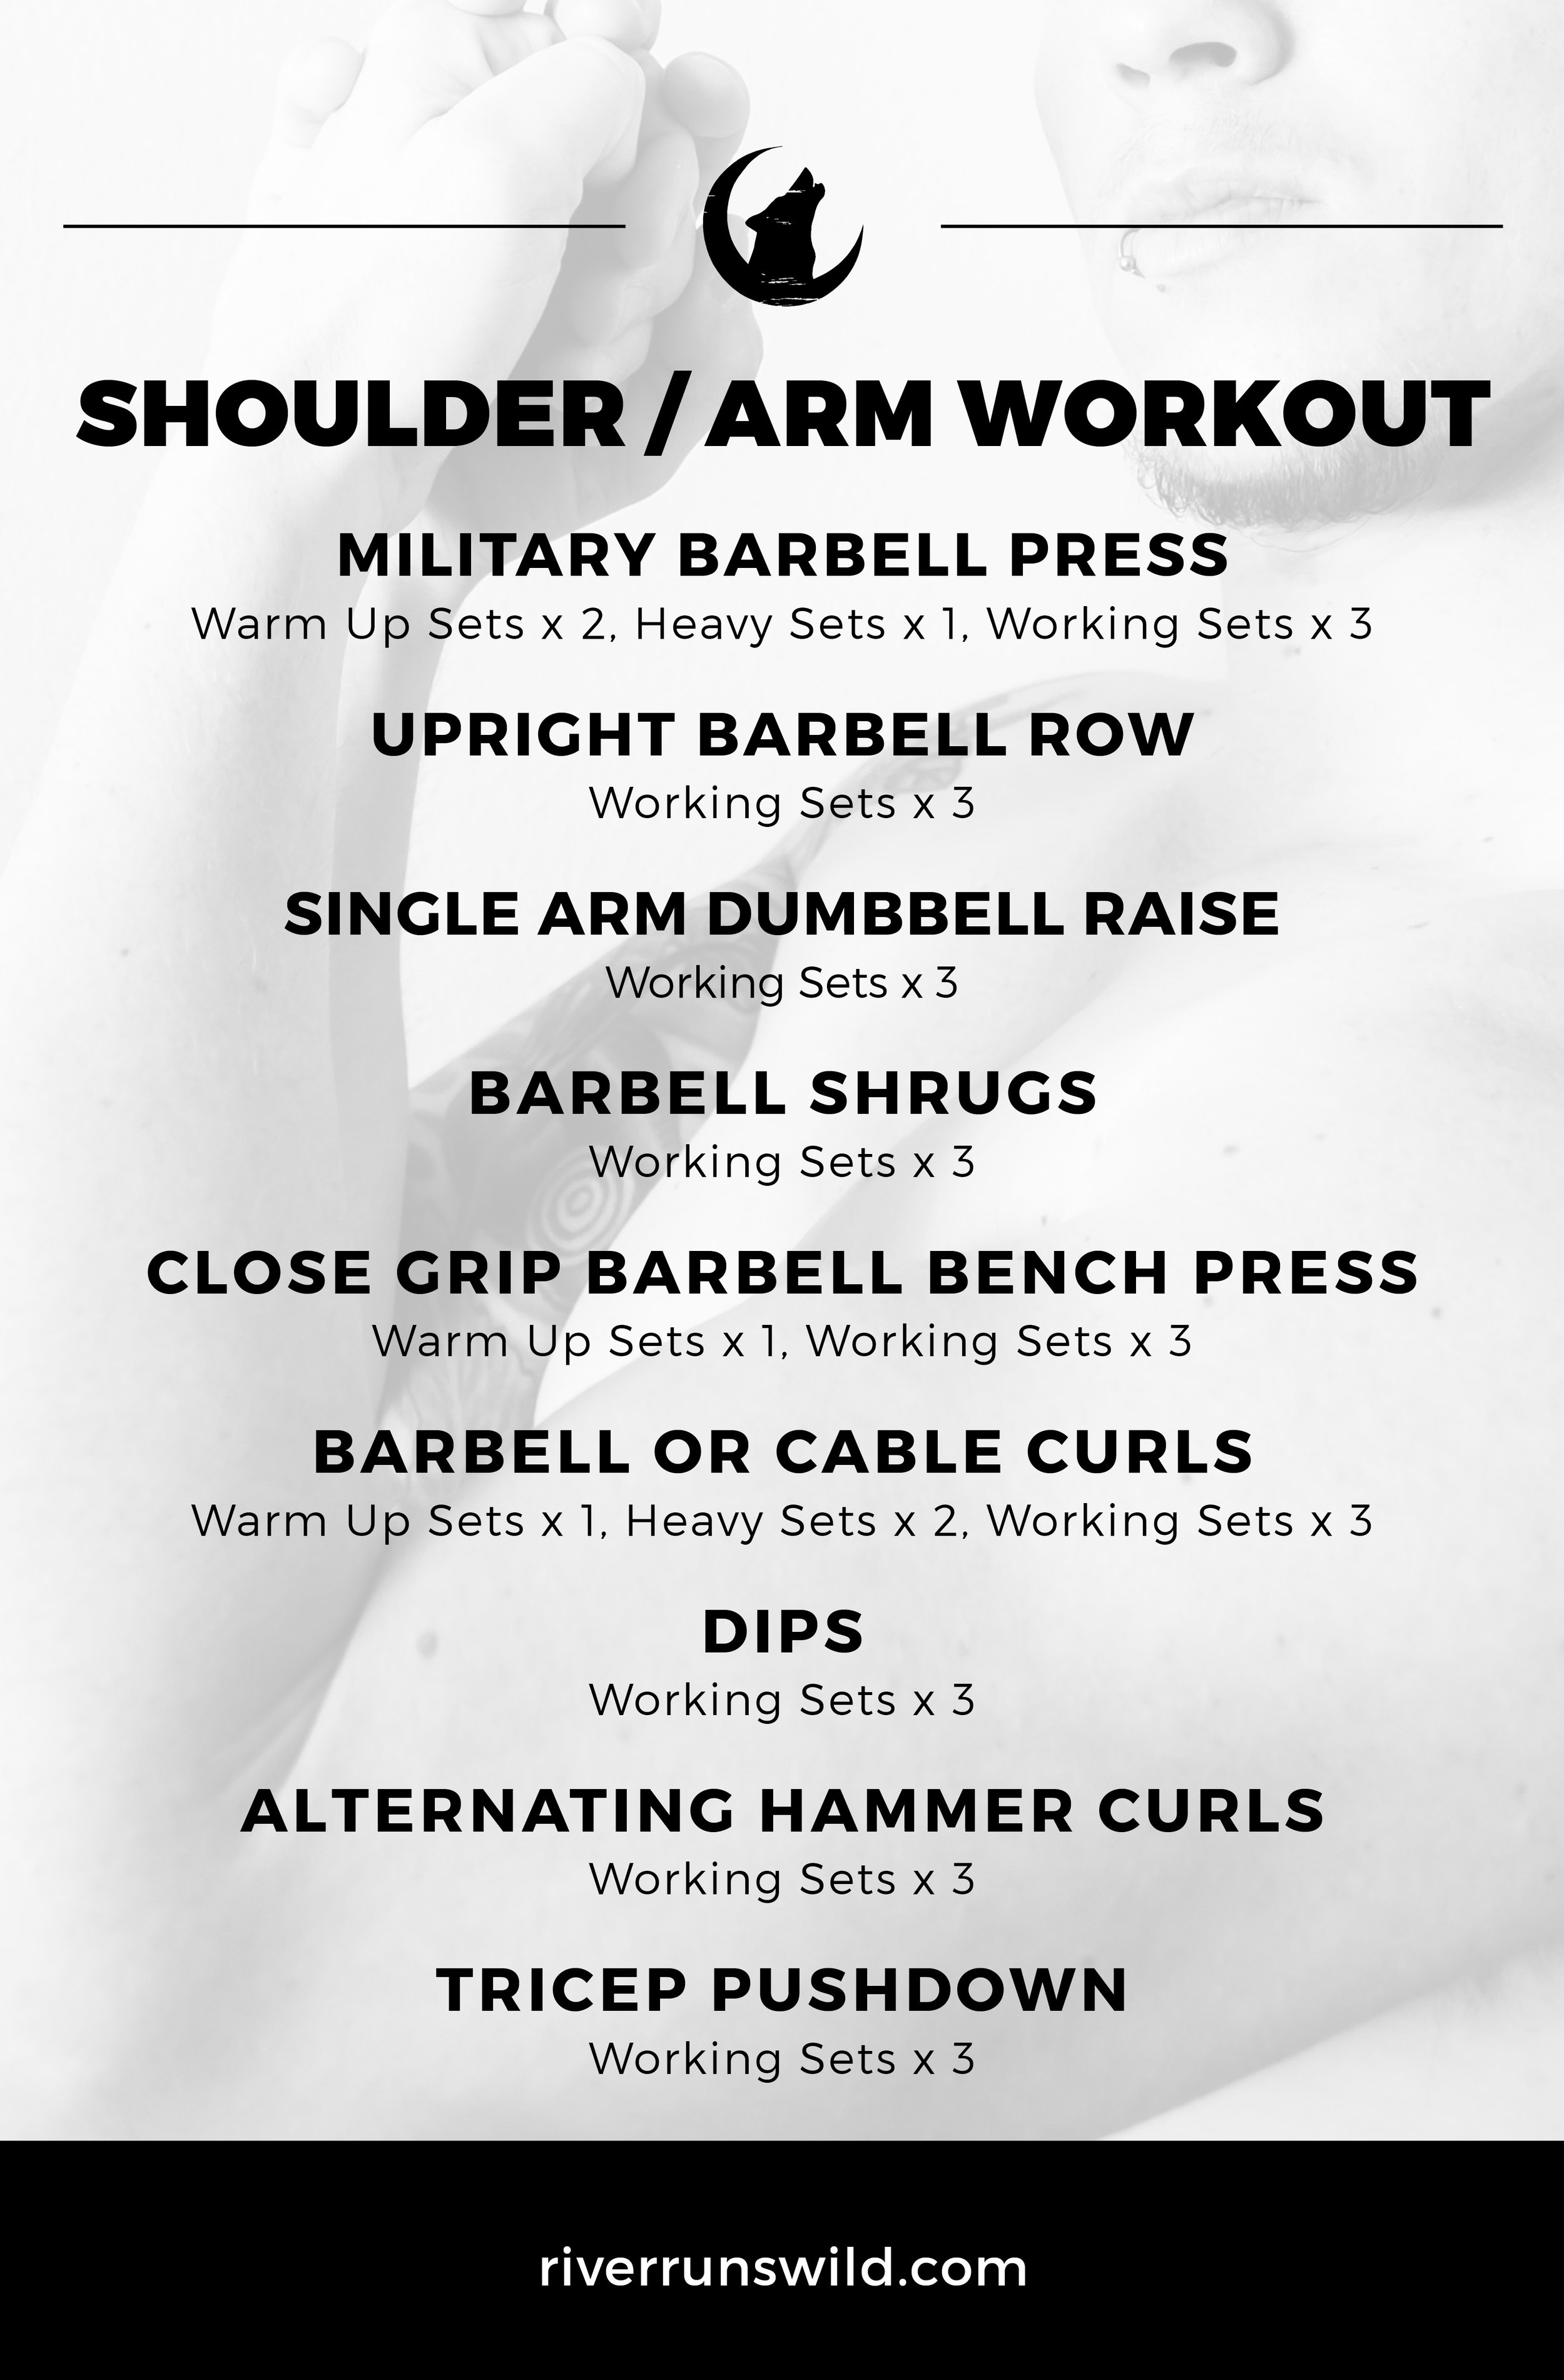 Feel free to download and/or share this workout!